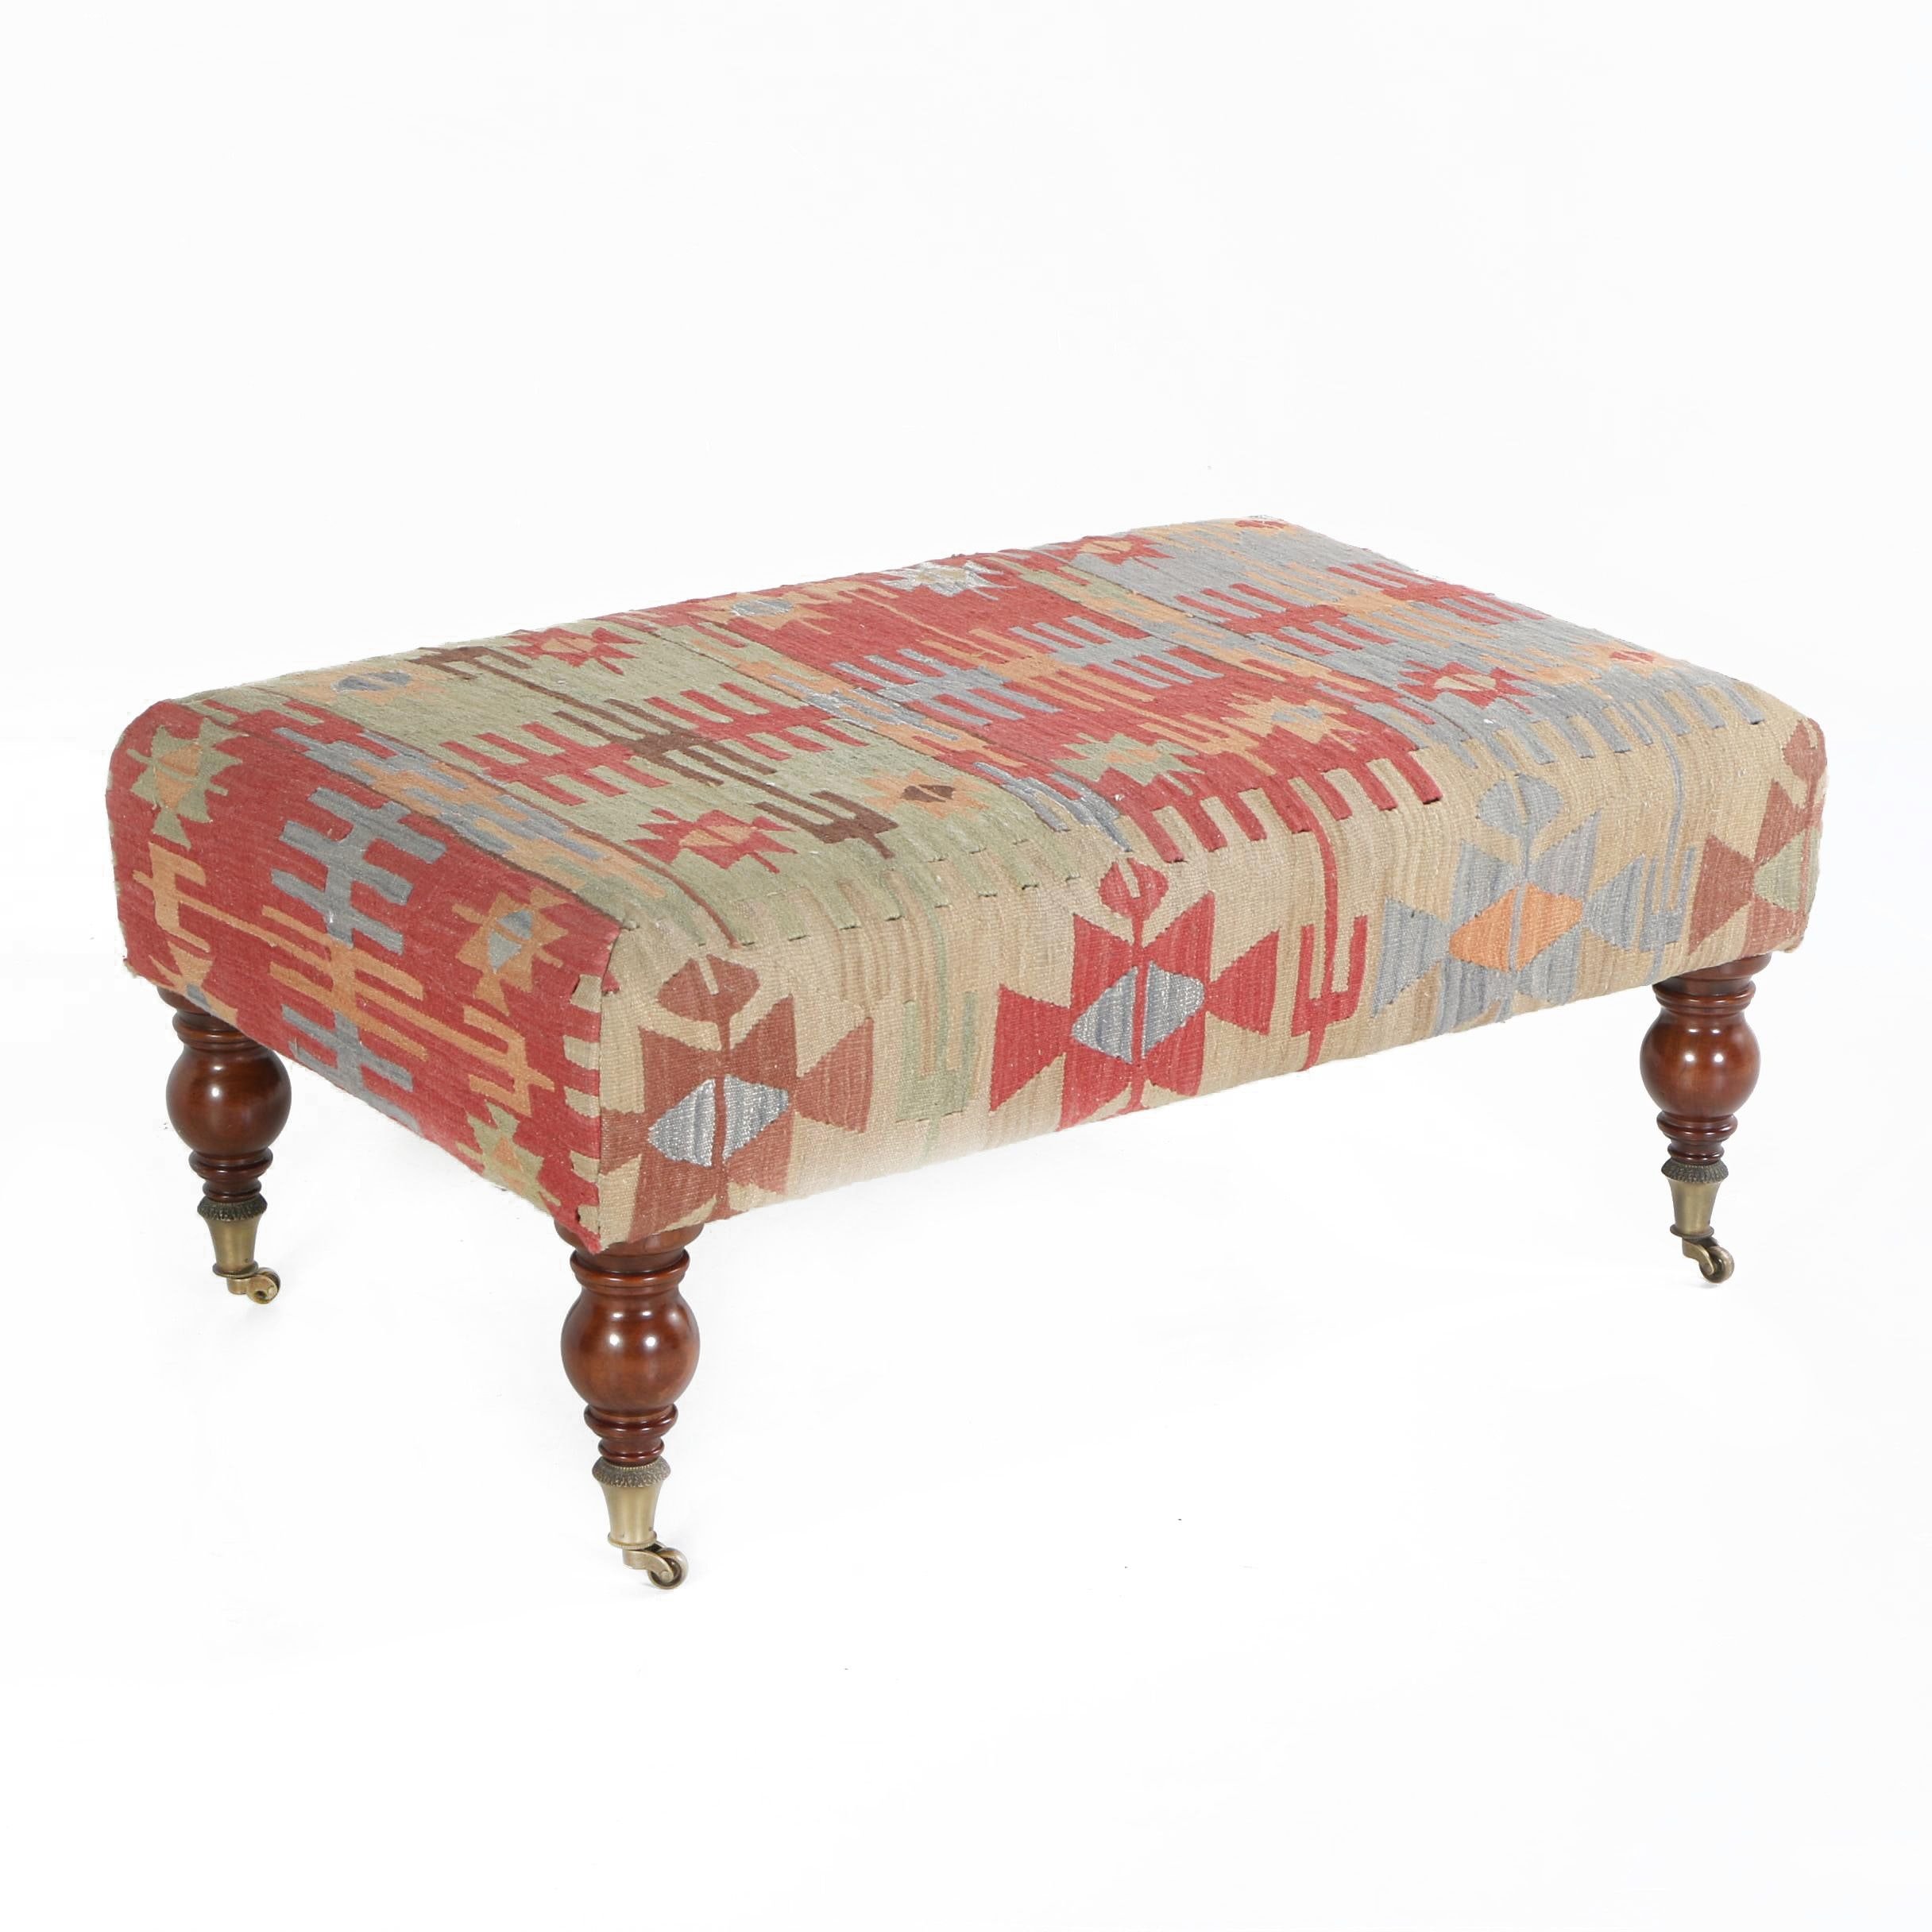 Southwestern Themed Ottoman by The Bombay Company